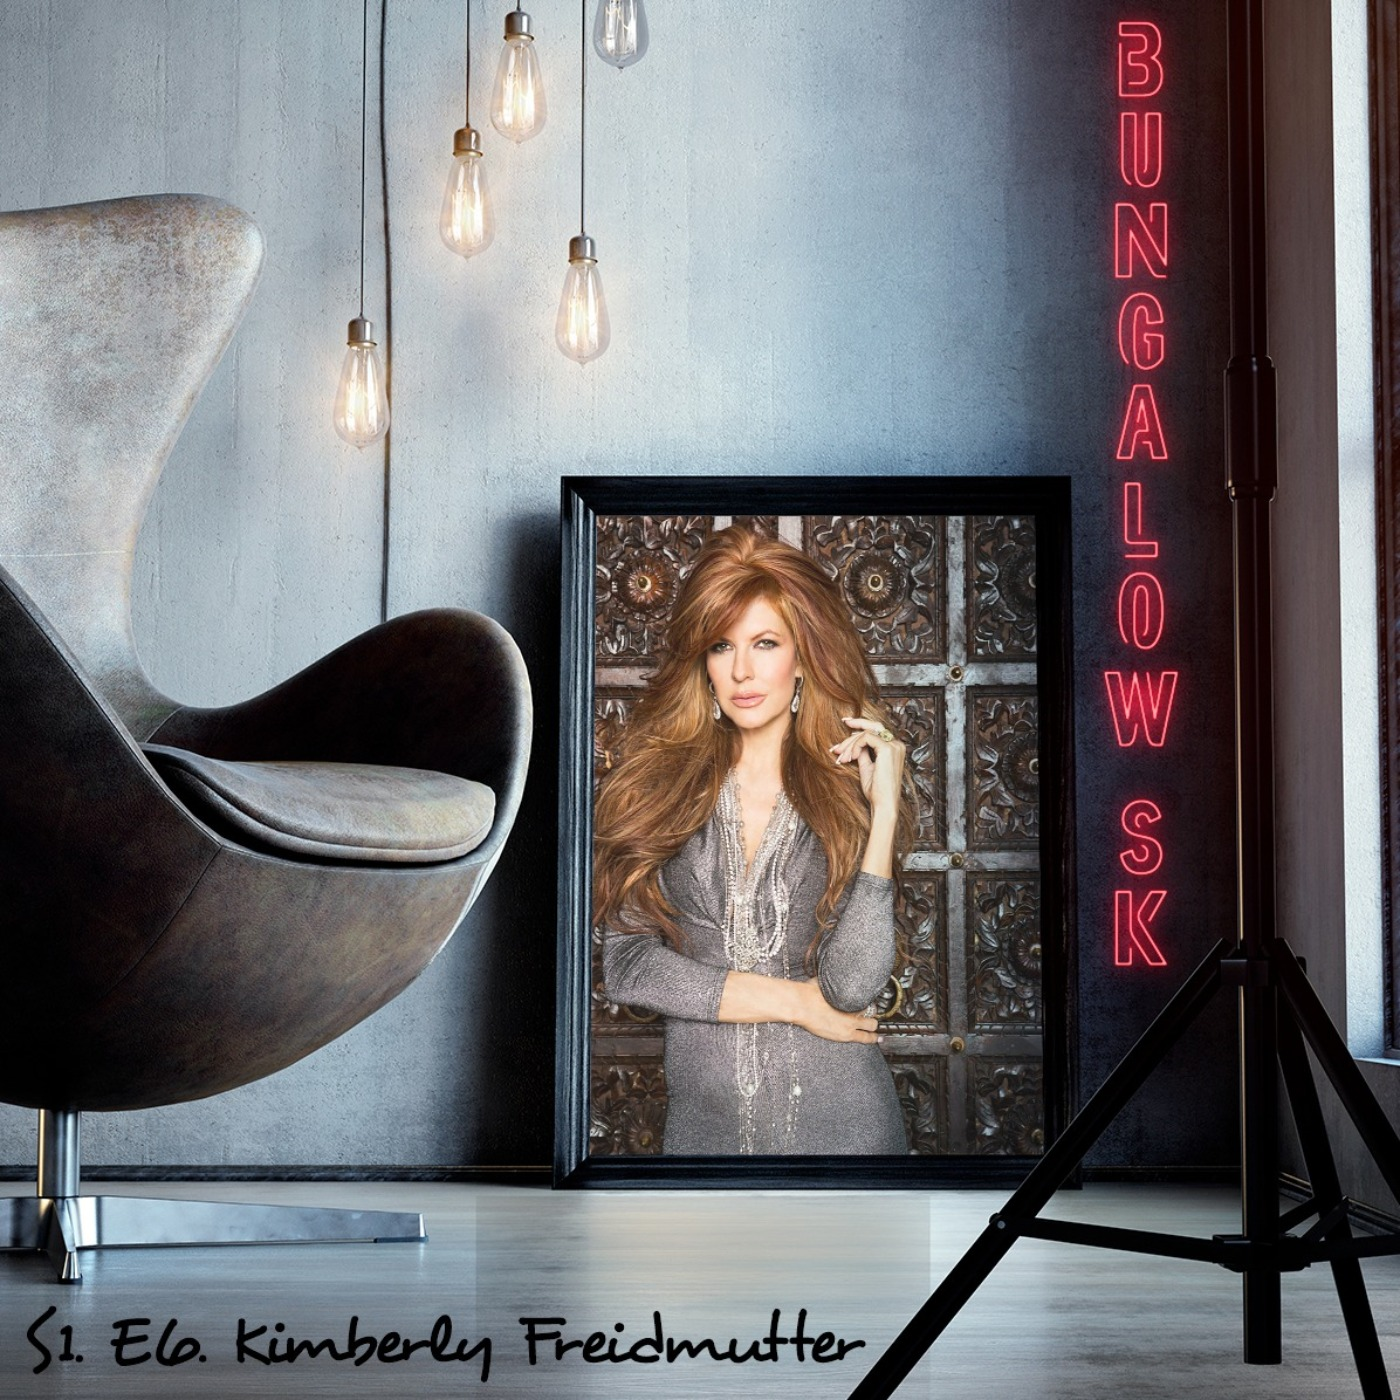 S1. E6. | BUNGALOW SK WITH CELEBRITY HYPNOTHERAPIST, KIMBERLY FRIEDMUTTER